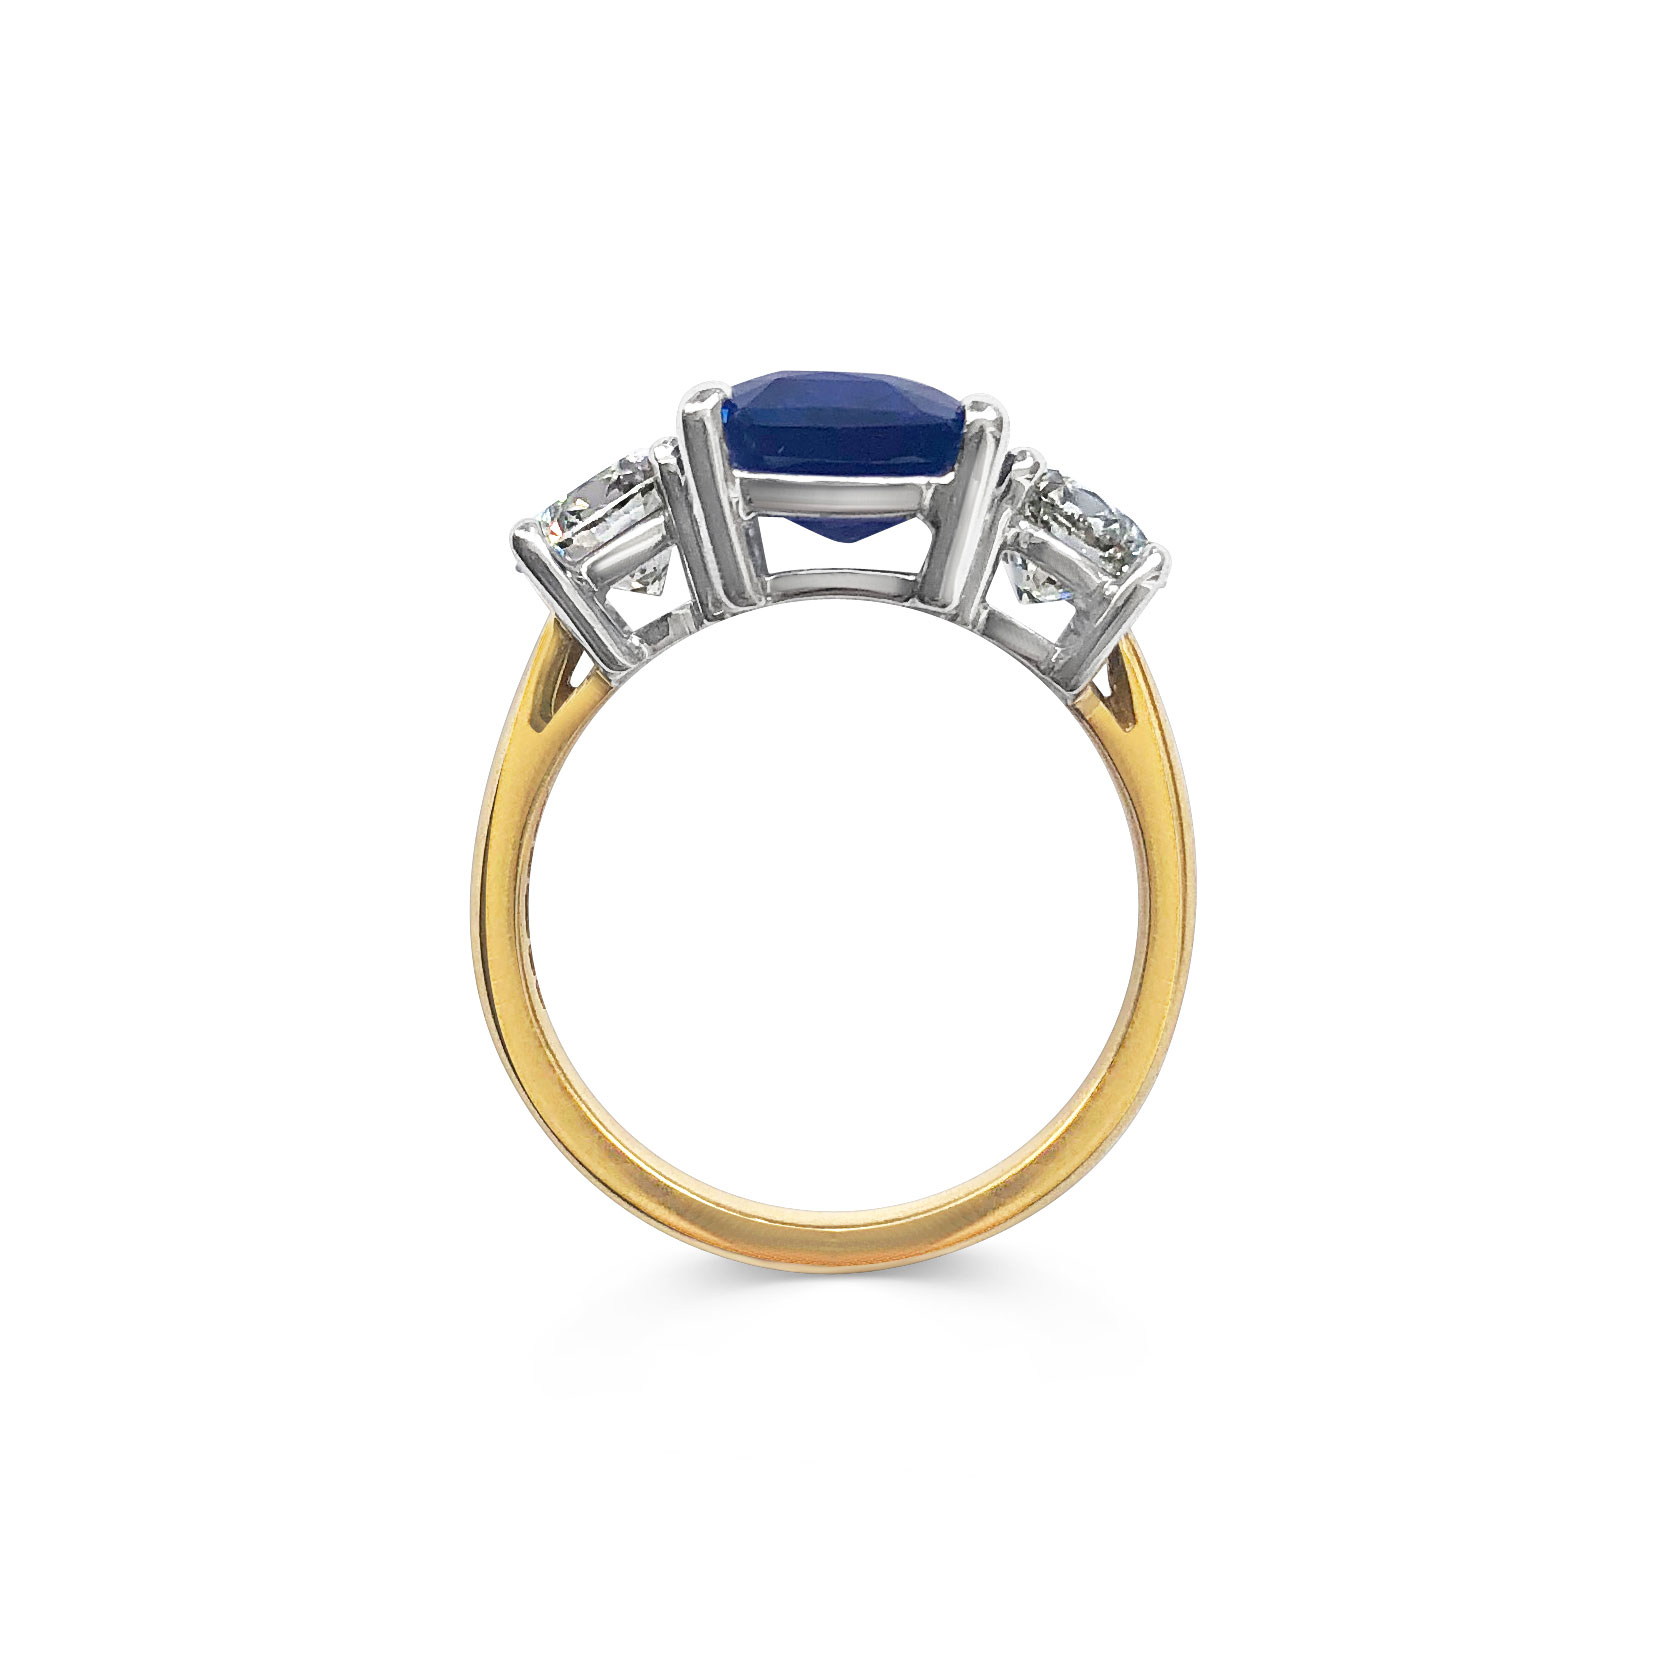 Emerald-cut Sapphire and diamond three stone ring set in 18ct yellow gold.